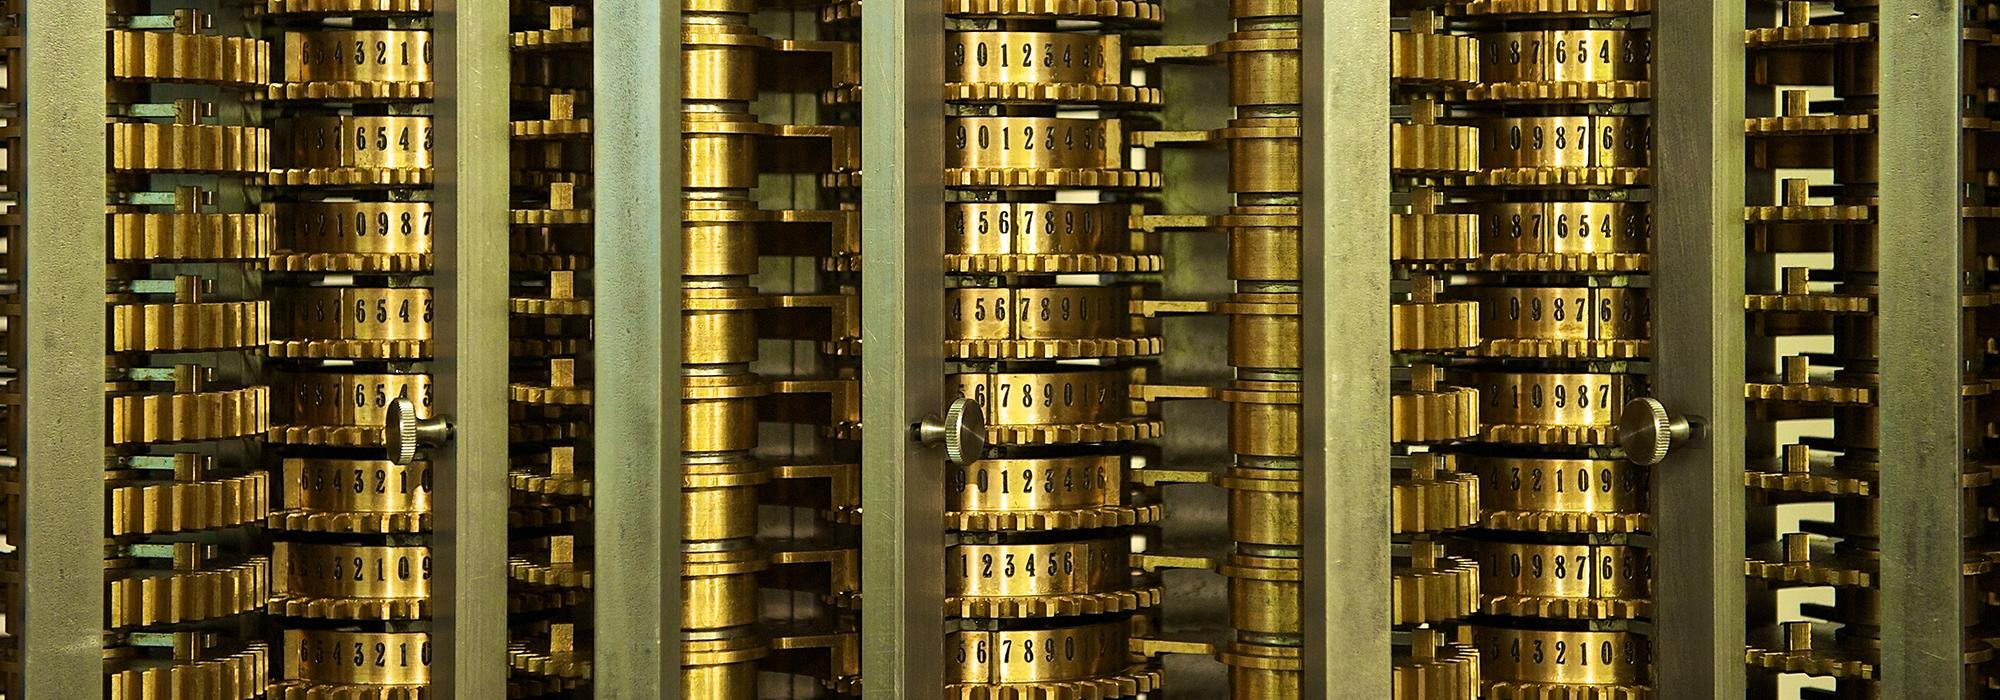 Babbage Difference Engine #2, by Larry Johnson (www.flickr.com/drljohnson) used under CC-BY 2.0 license